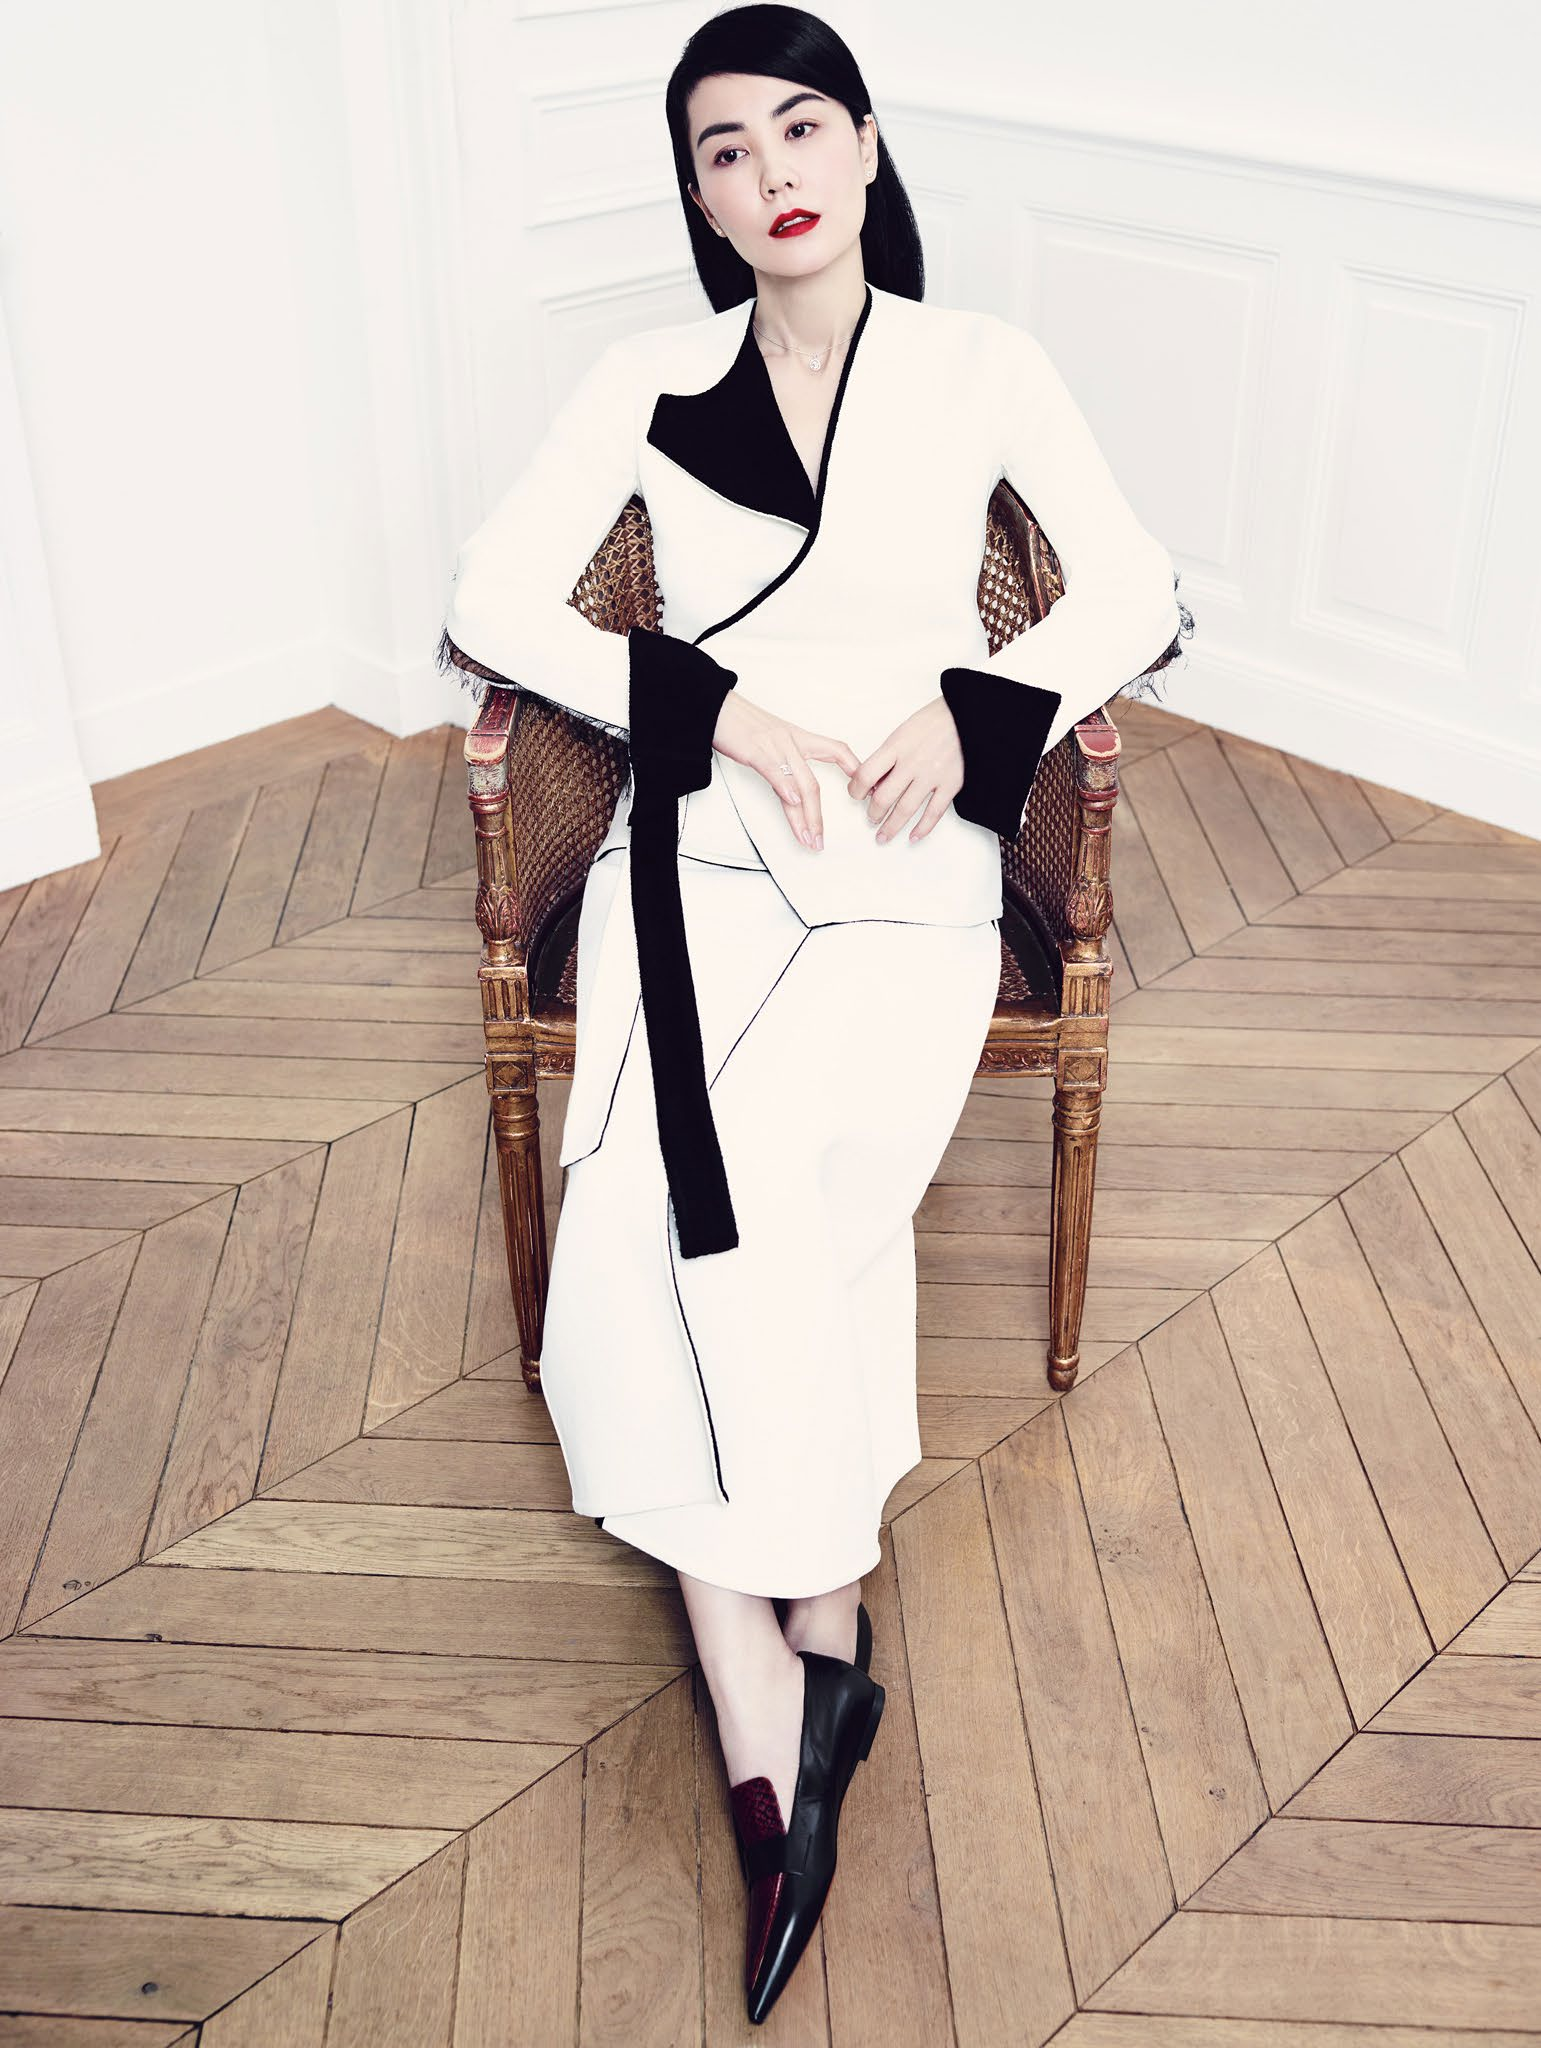 faye-wong-by-emma-summerton-for-vogue-china-june-2014-2